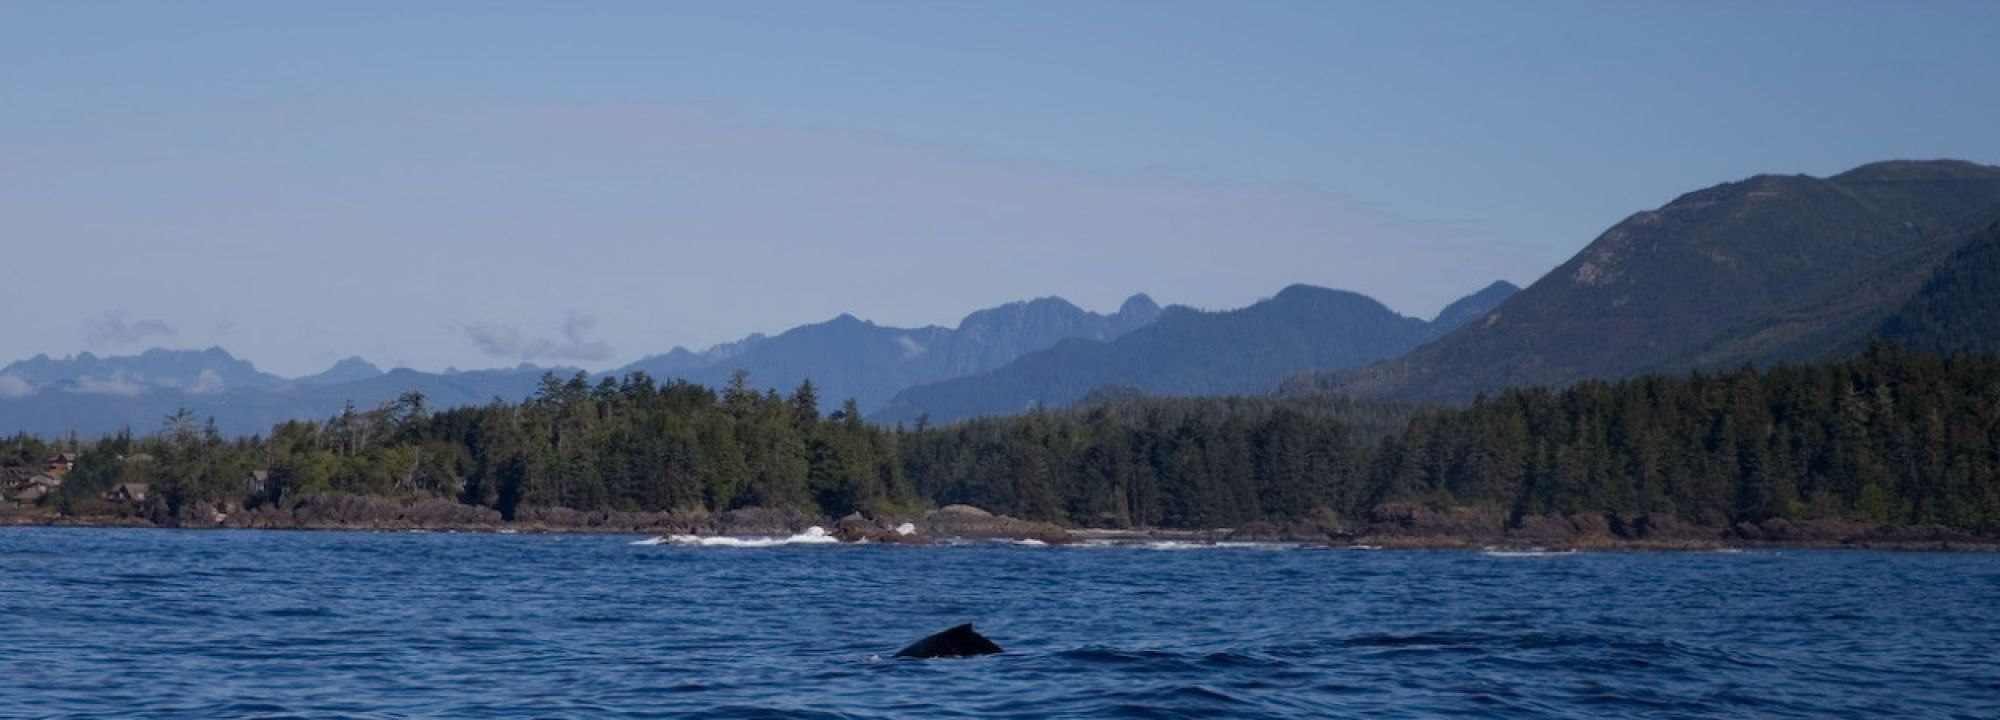 Day Fishing Trips for Ucluelet, Victoria BC - Salmon Eye Charters